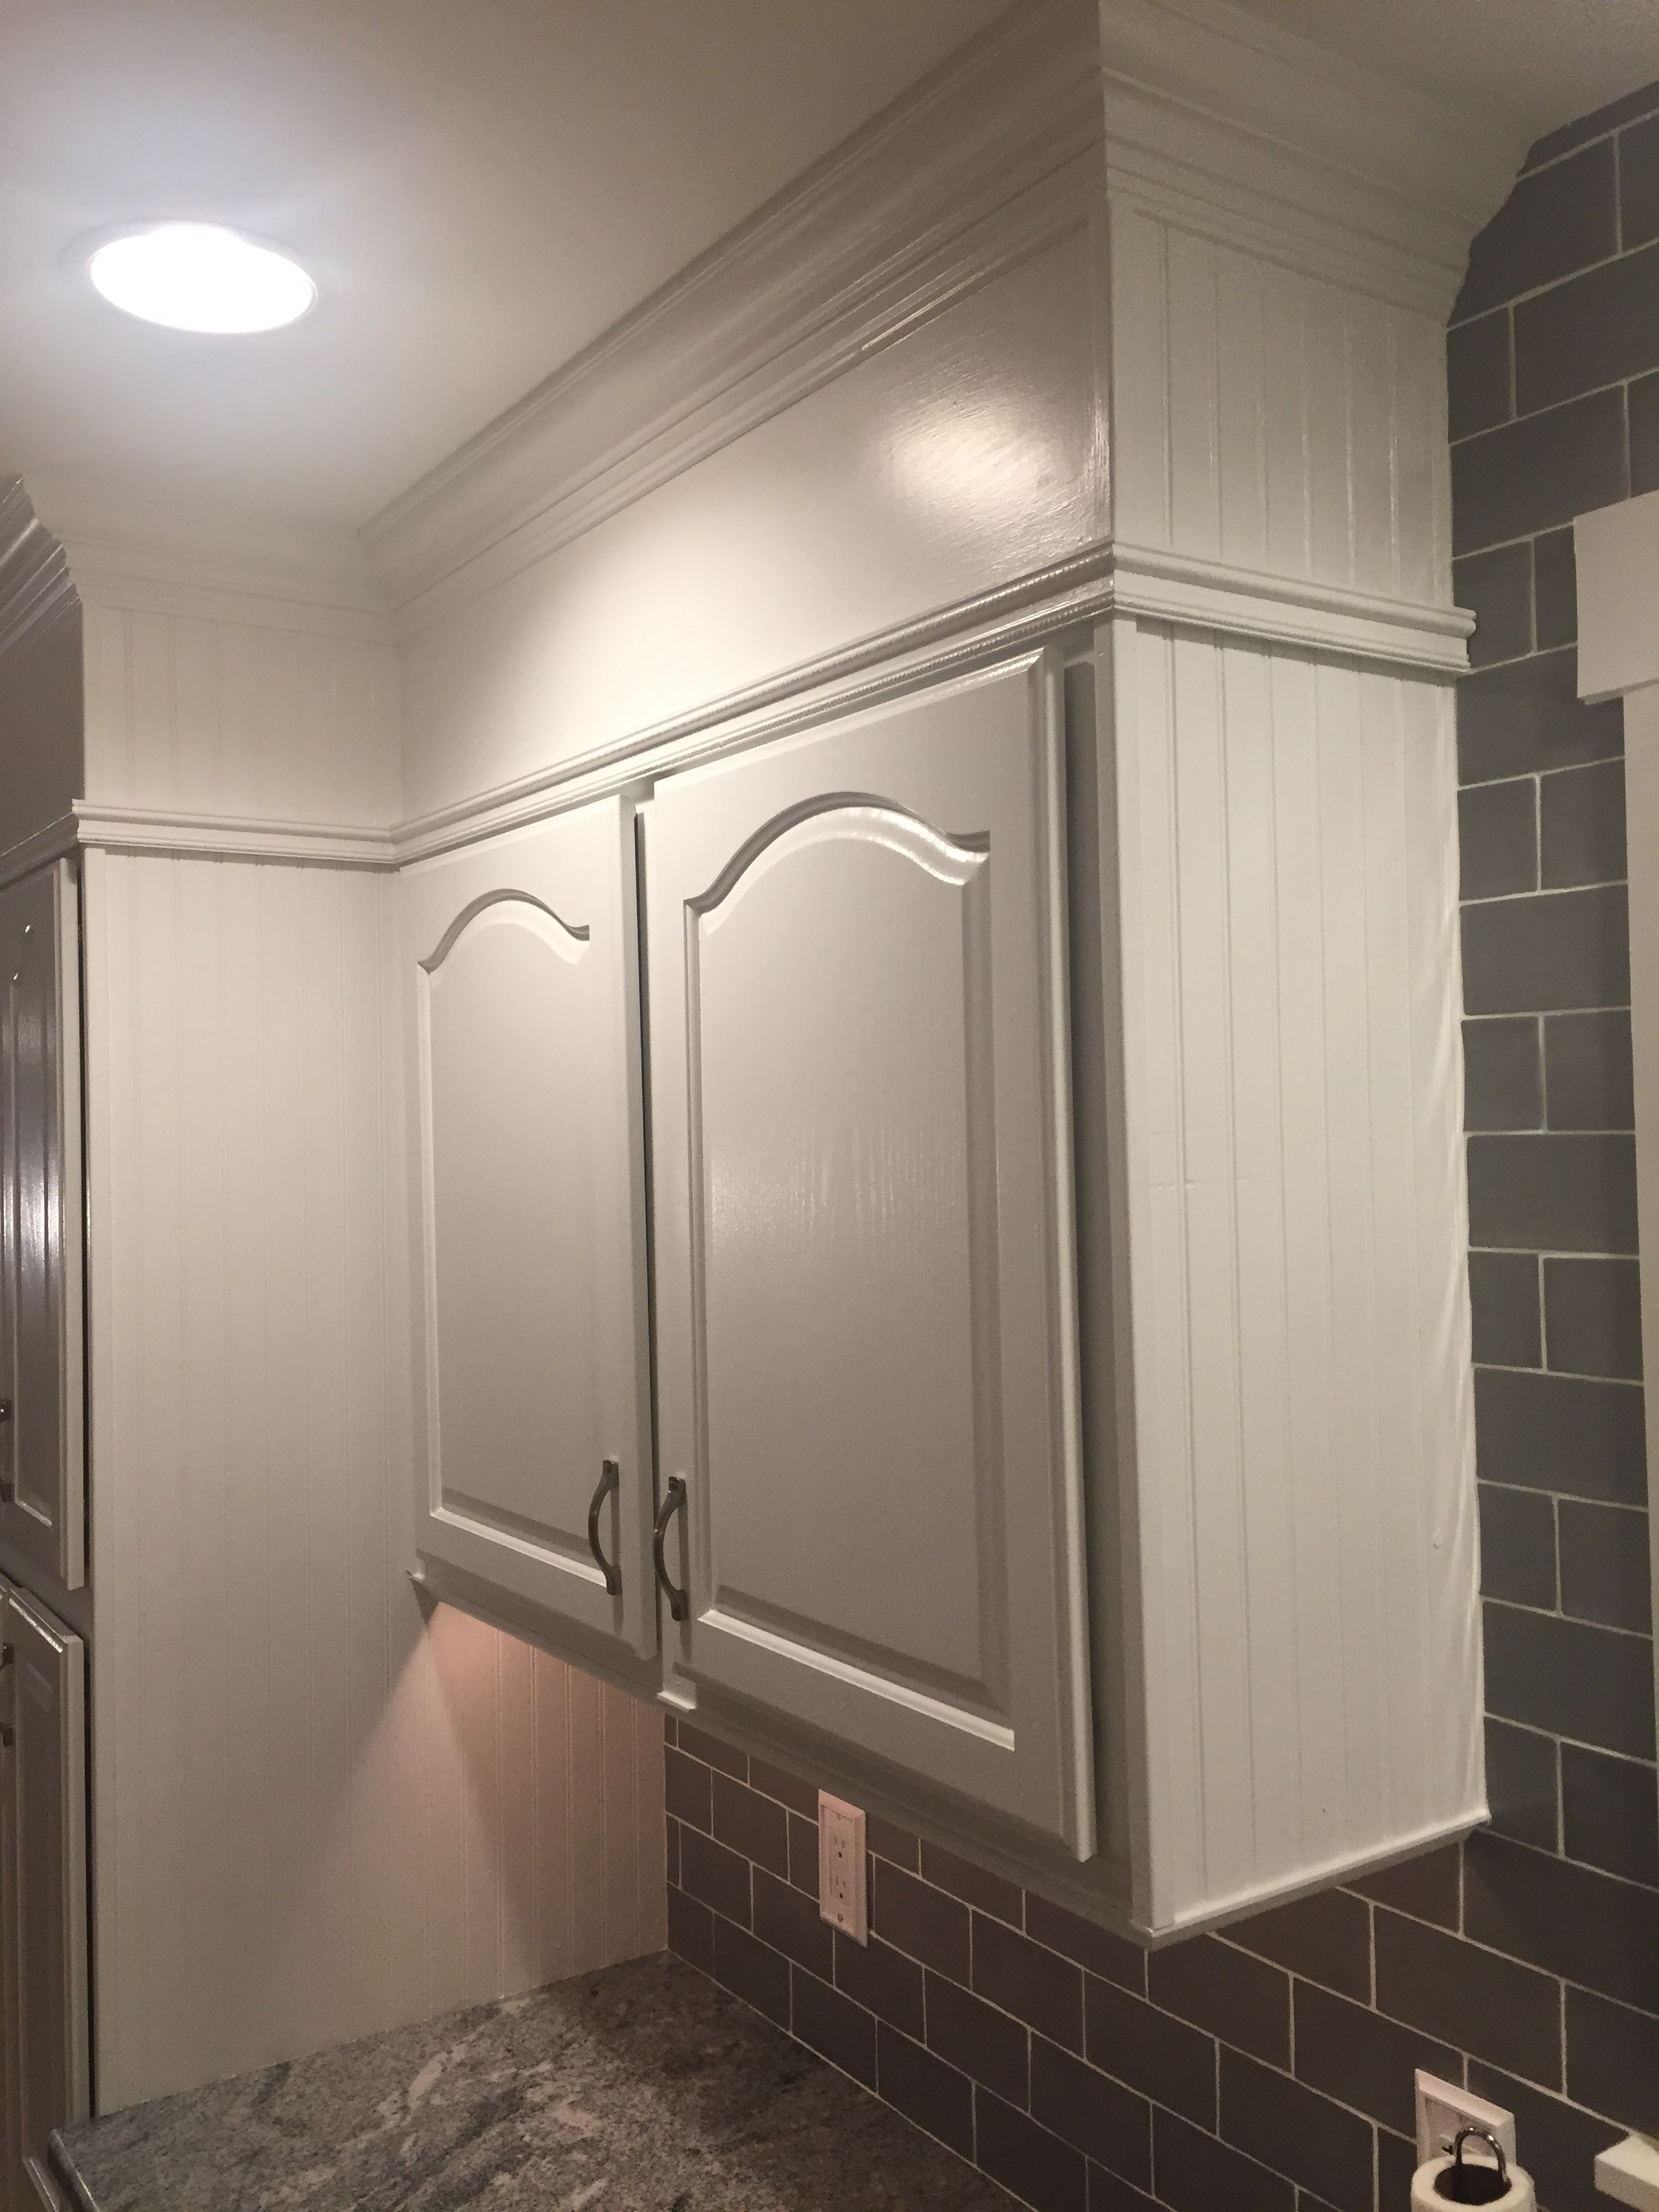 Wood Soffit Adding To Kitchen Cabinets With Wainscoting In